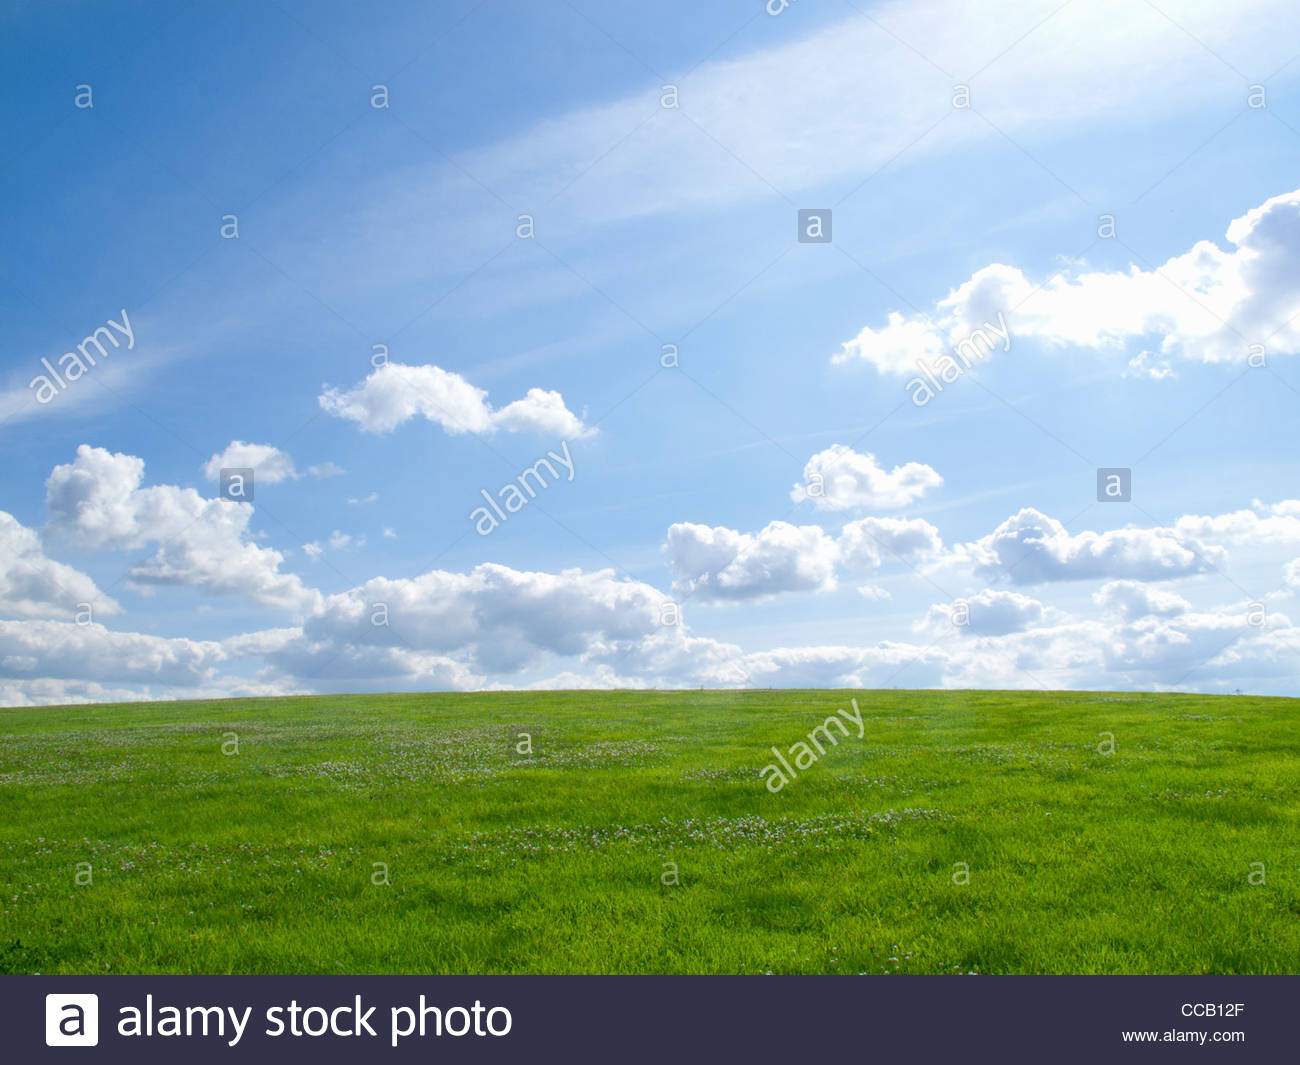 Green grass under sunny blue sky - Stock Image